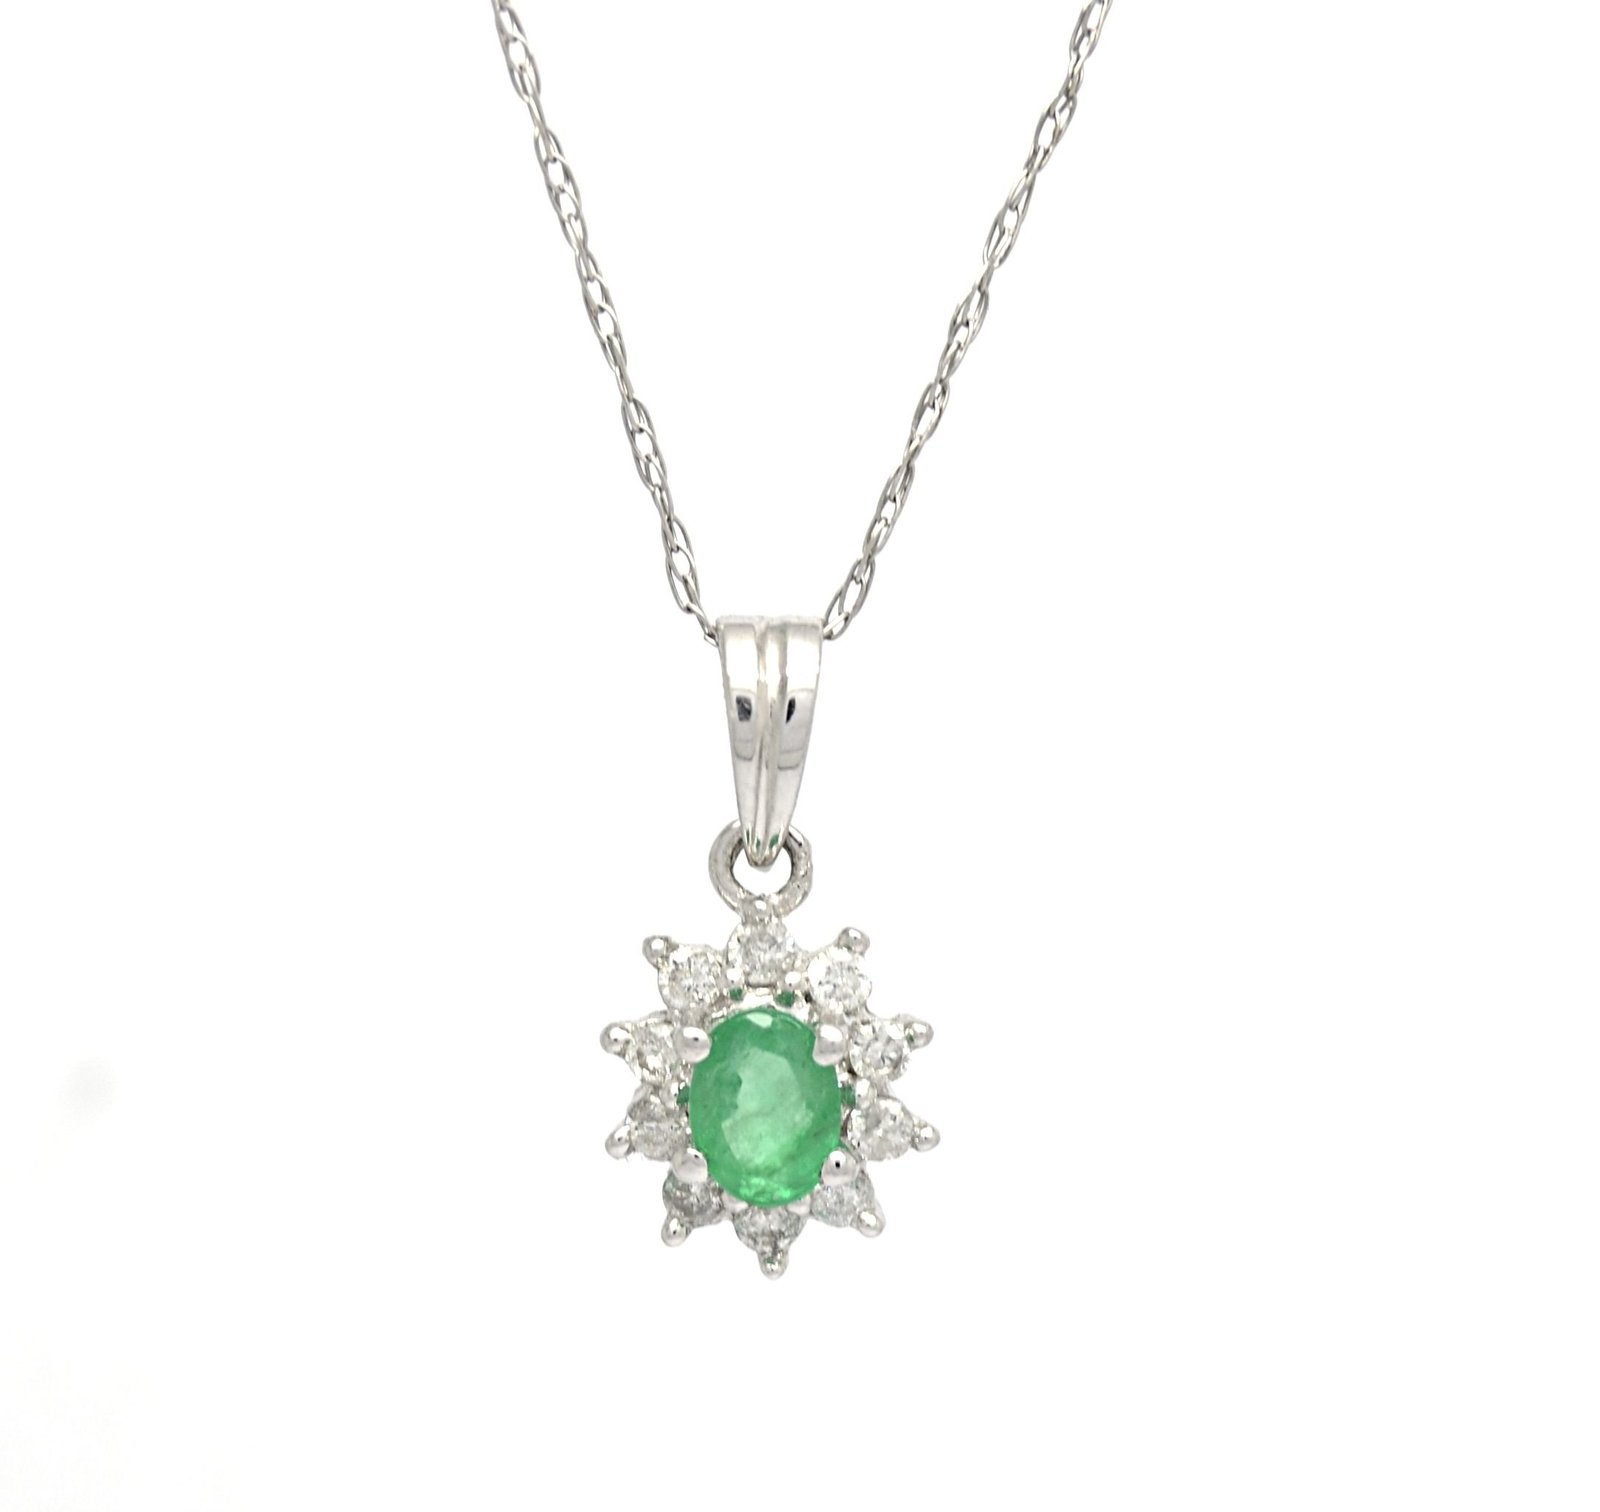 14K White Gold Genuine Emerald Diamond Pendant with 10 K Cable Chain